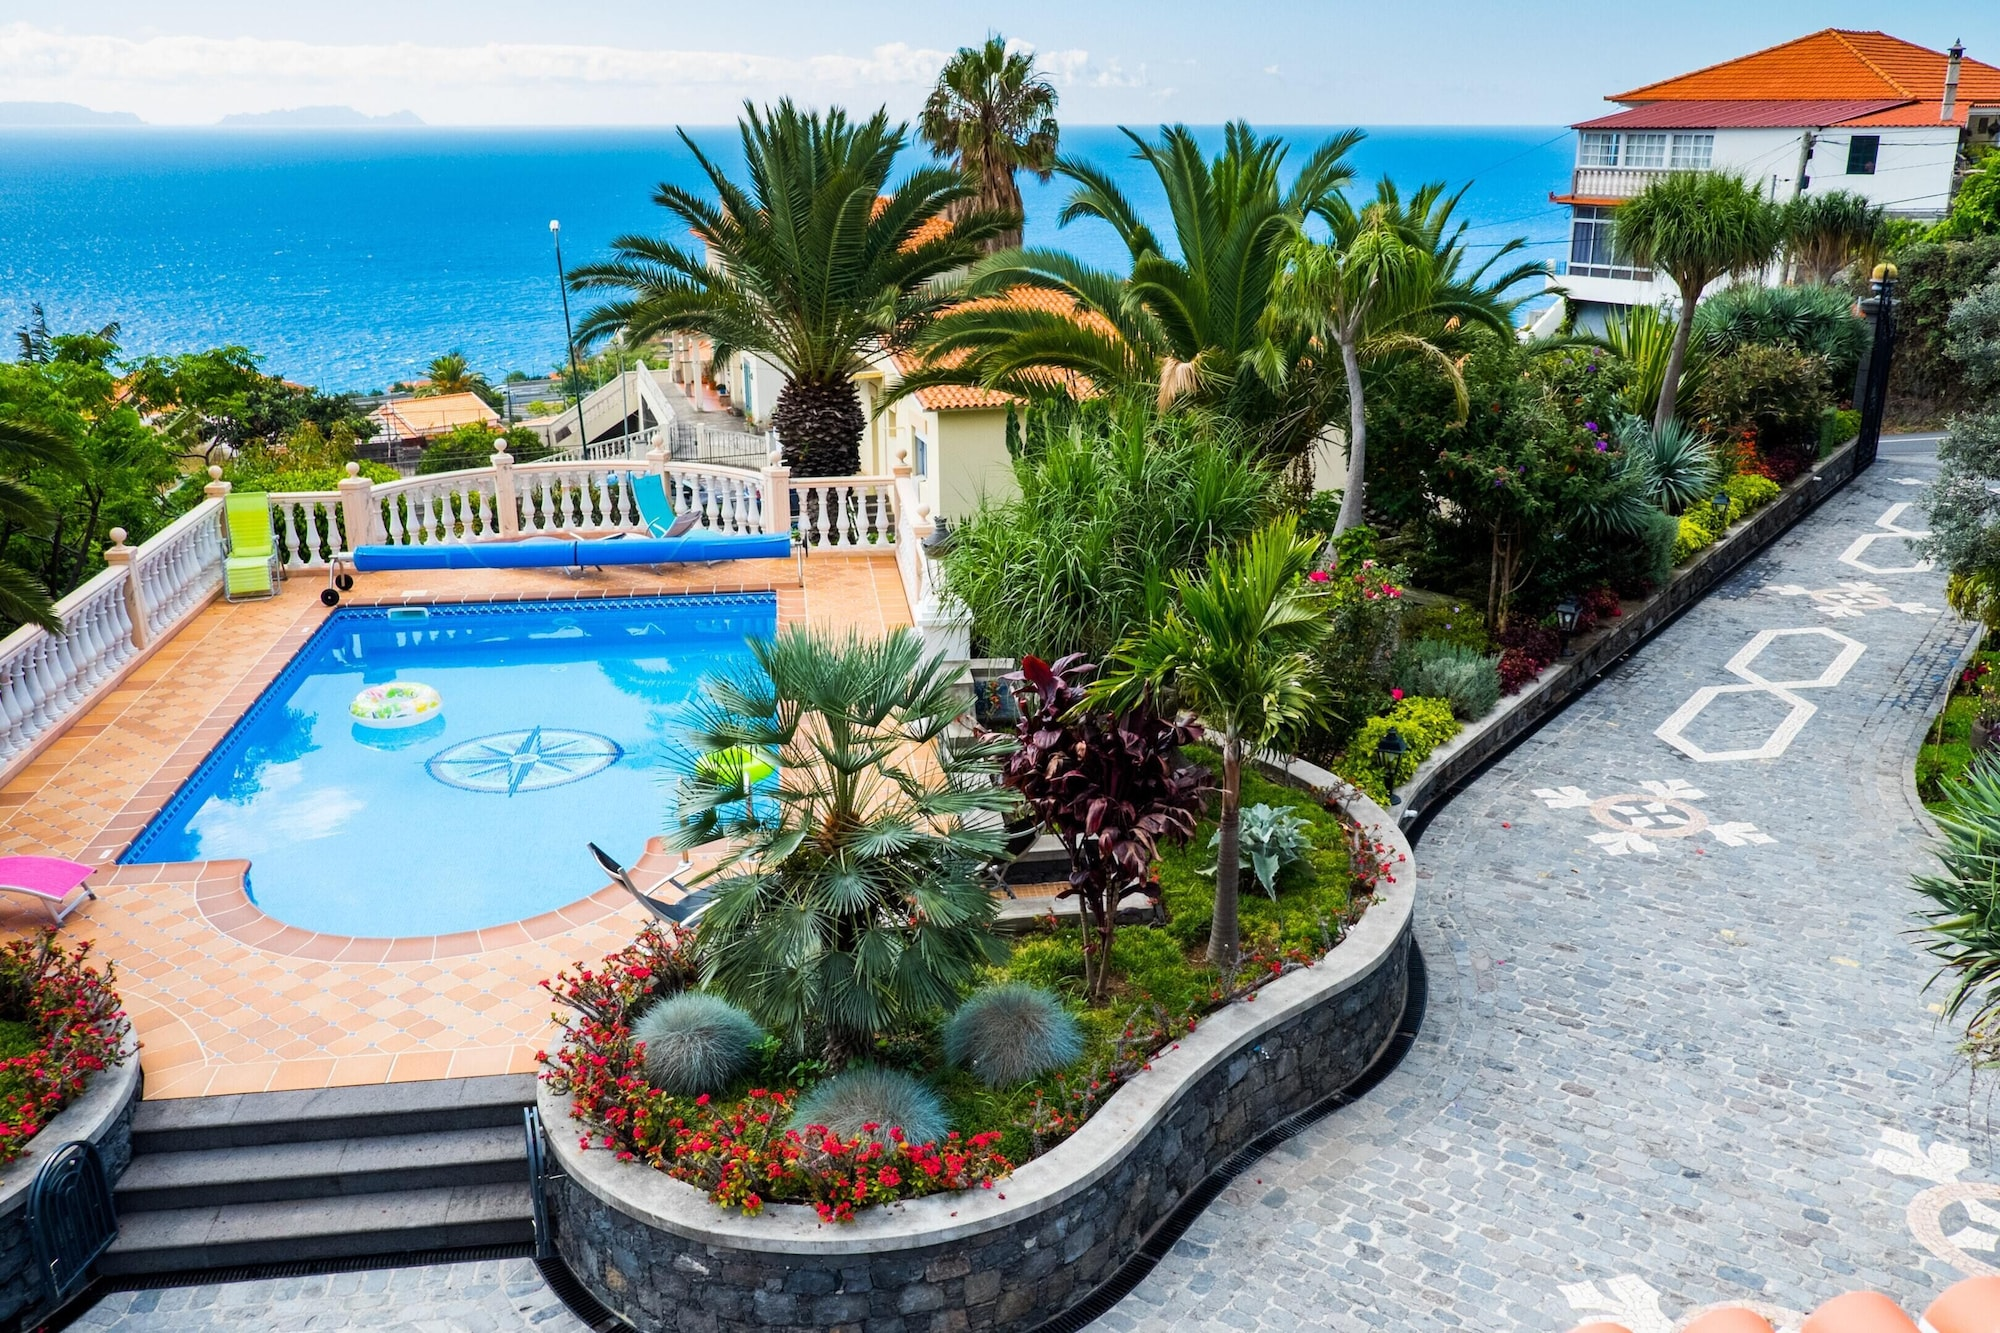 Studio in Caniço, With Shared Pool, Enclosed Garden and Wifi - 1 km From the Beach, Santa Cruz